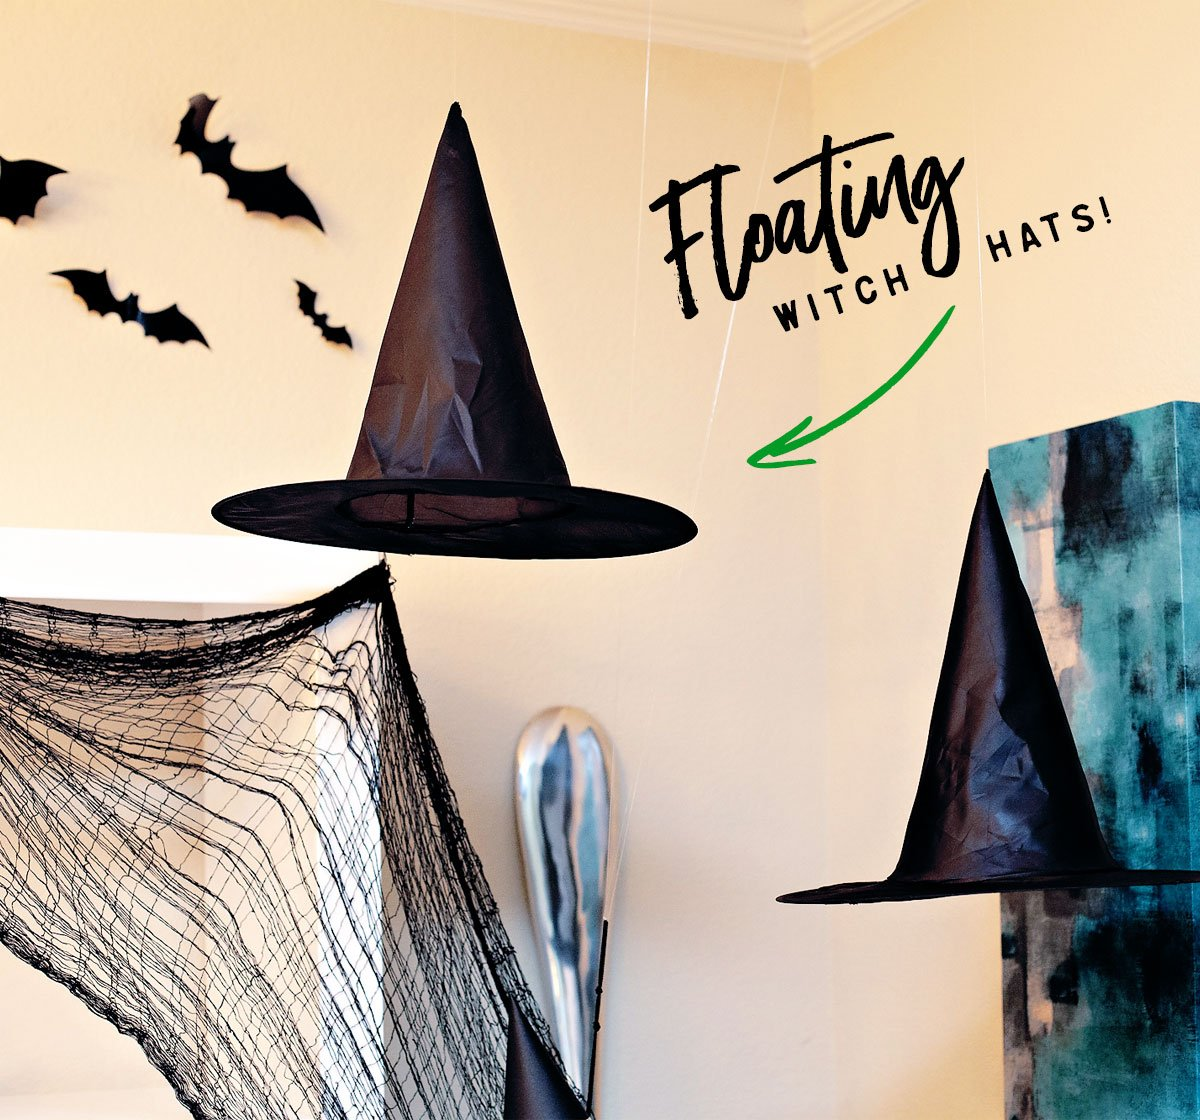 Easy Floating Witch Hats